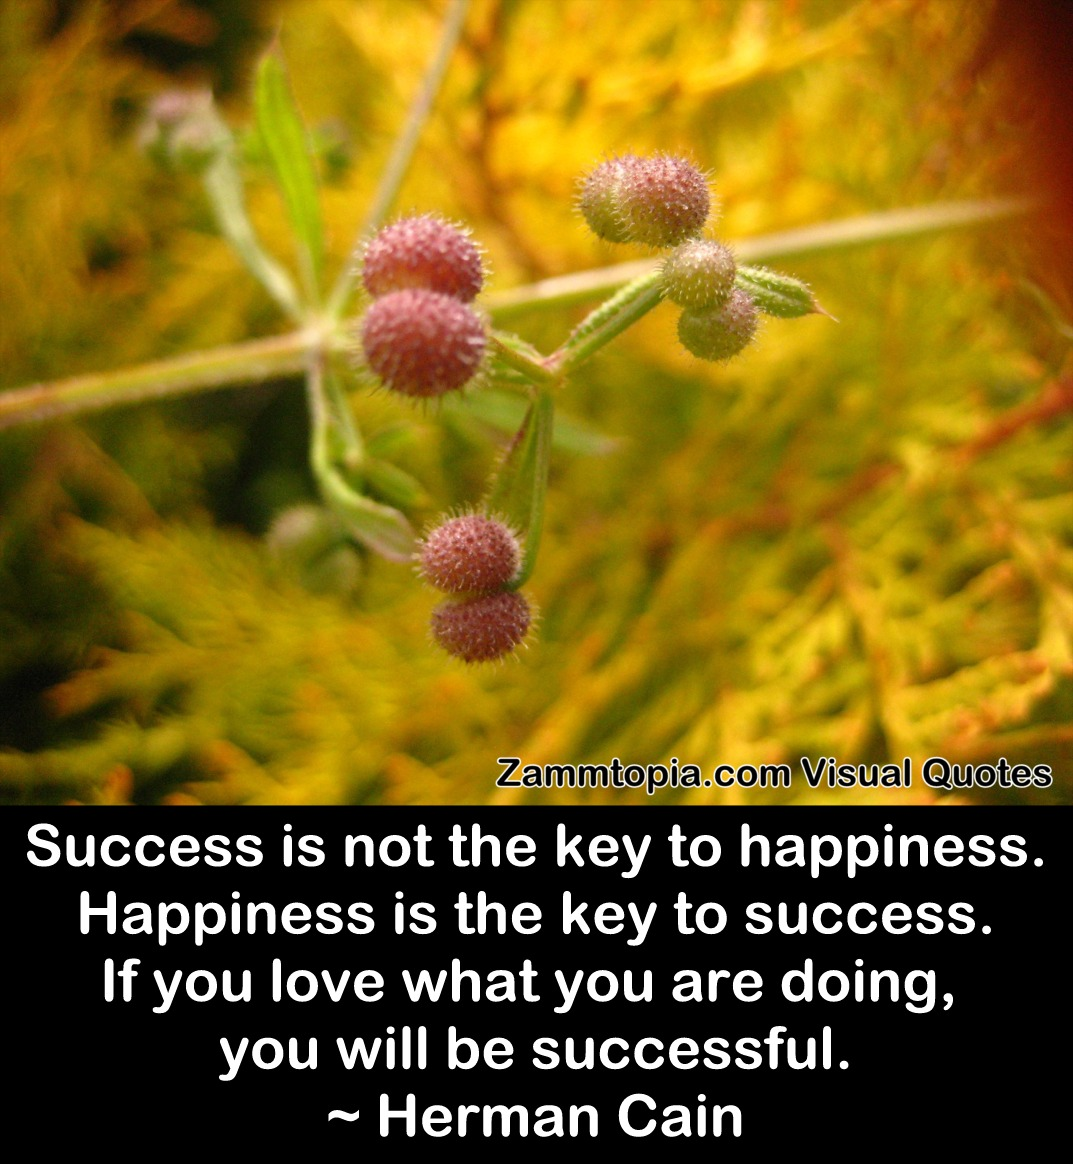 Herman Cain on Success